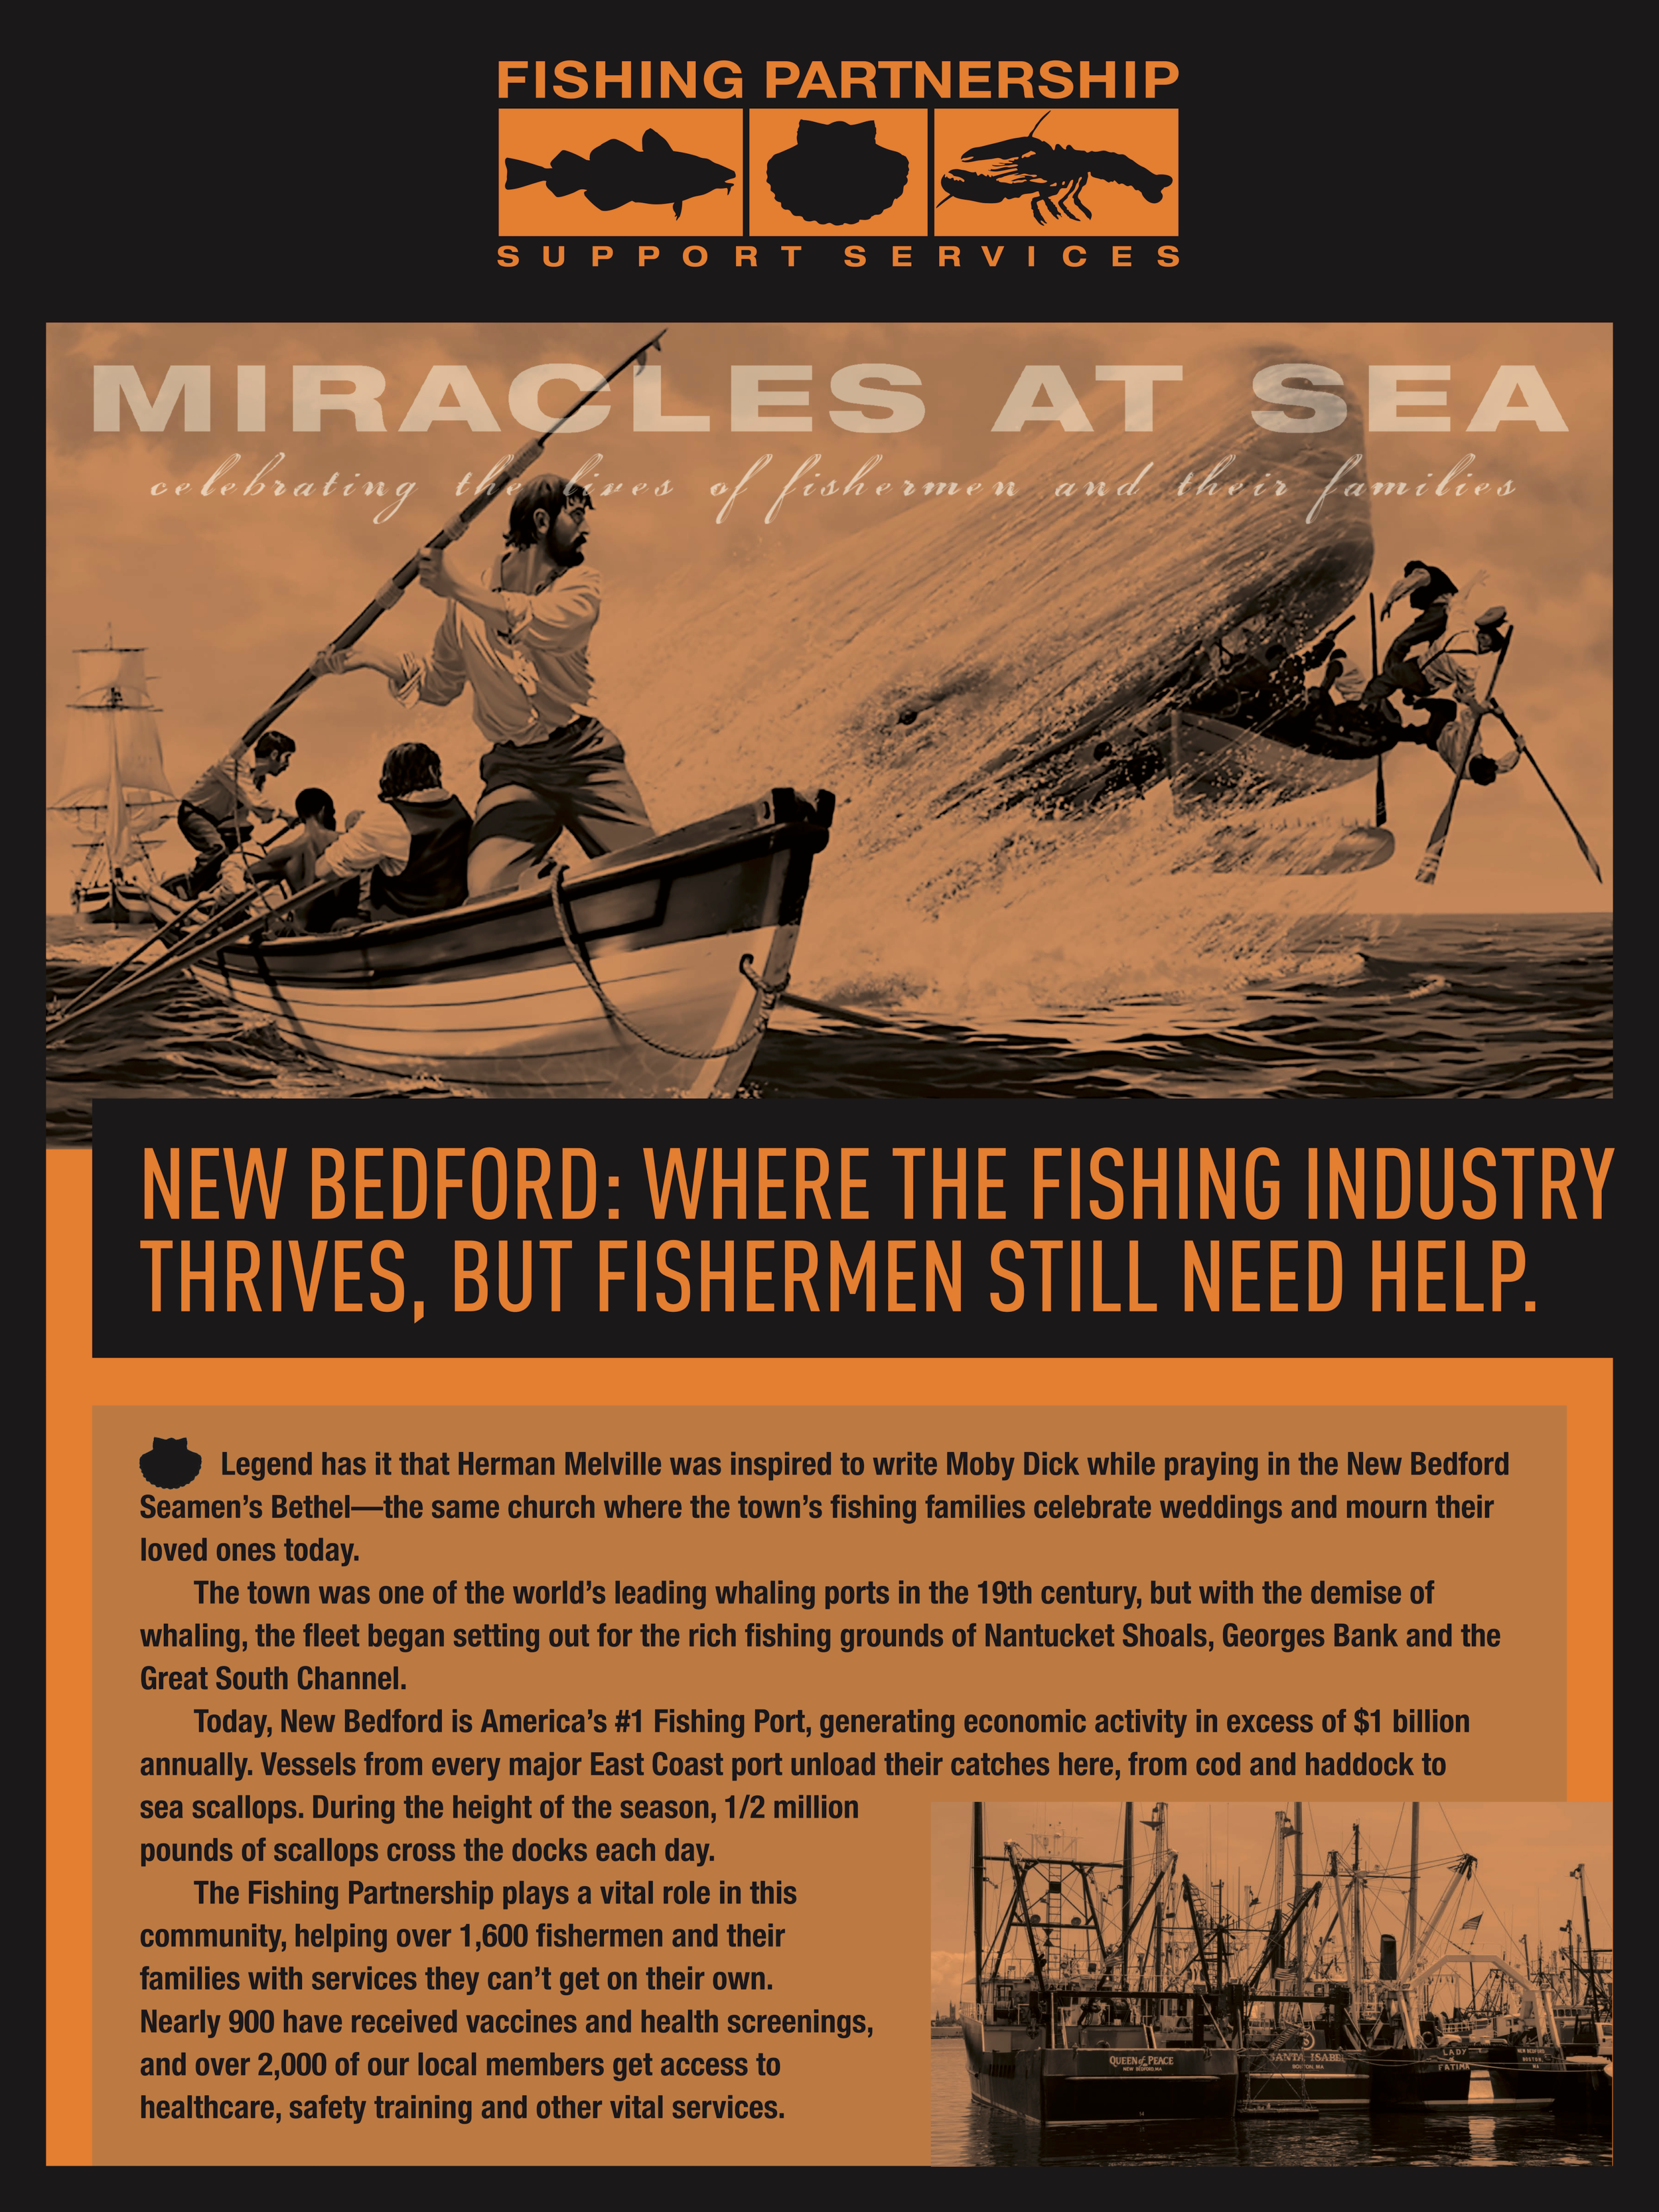 Fishing Partnership - A non-profit based in Boston, the Fishing Partnership works with over 19,000 commercial fishermen and their families, delivering vital services such as healthcare, safety training and addiction counseling. We worked with them throughout the summer of 2017, creating posters, an invitation, email and a program book for their 20th Anniversary event.   VIEW THE WORK